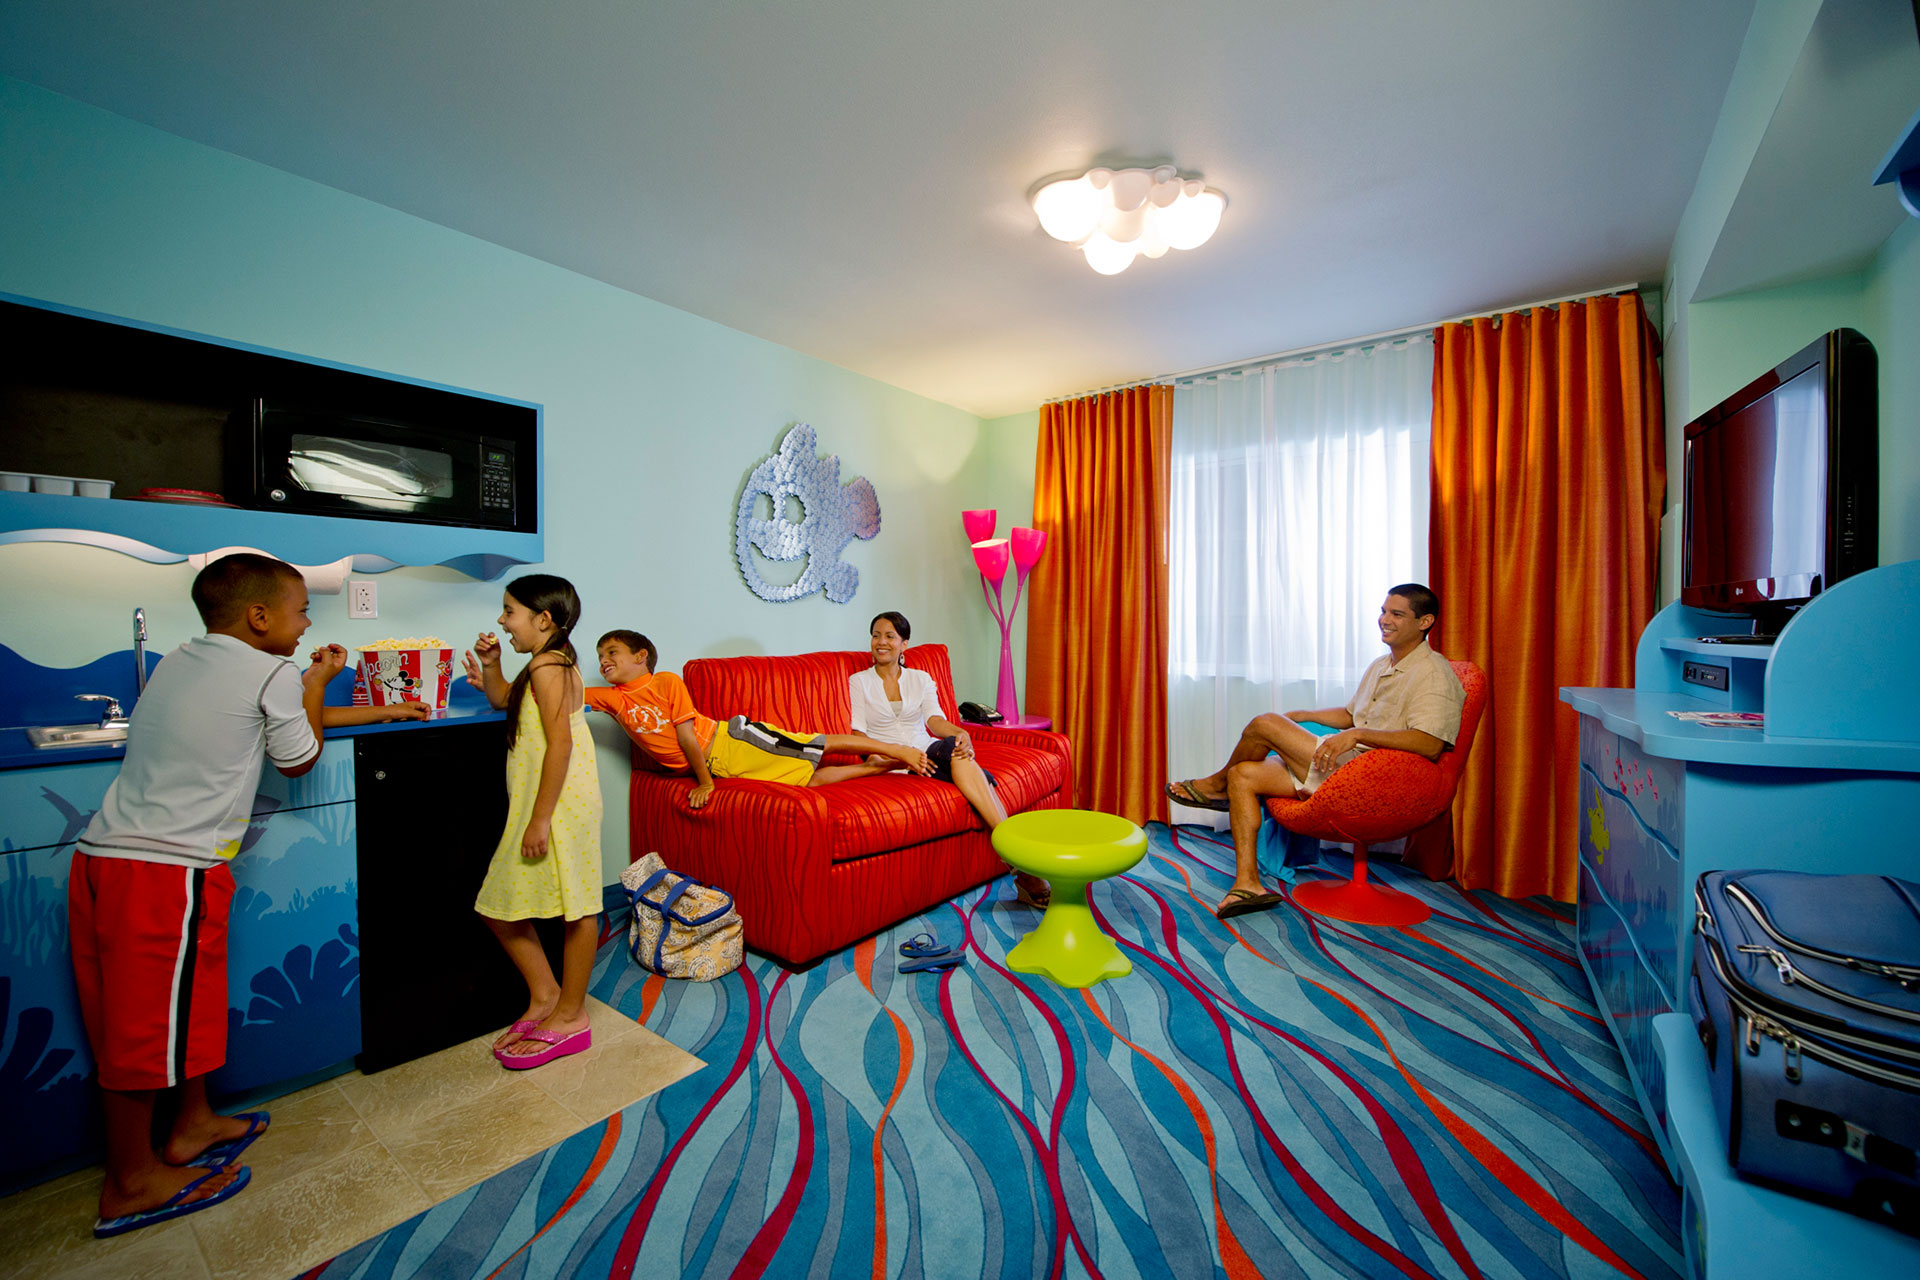 Finding Nemo Suite at Disney's Art of Animation Resort; Courtesy of Disney